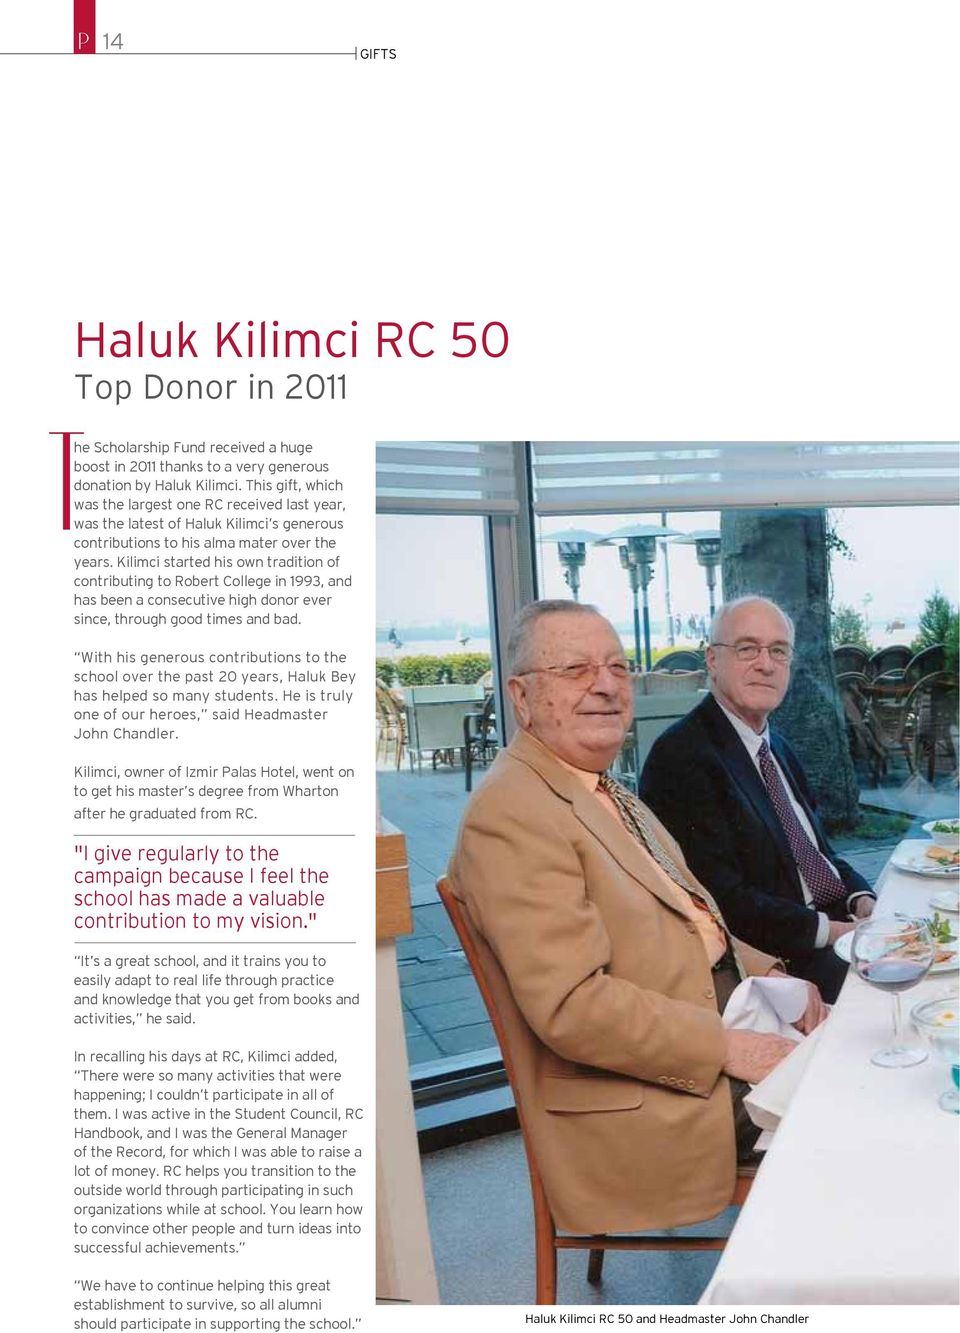 Kilimci started his own tradition of contributing to Robert College in 1993, and has been a consecutive high donor ever since, through good times and bad.